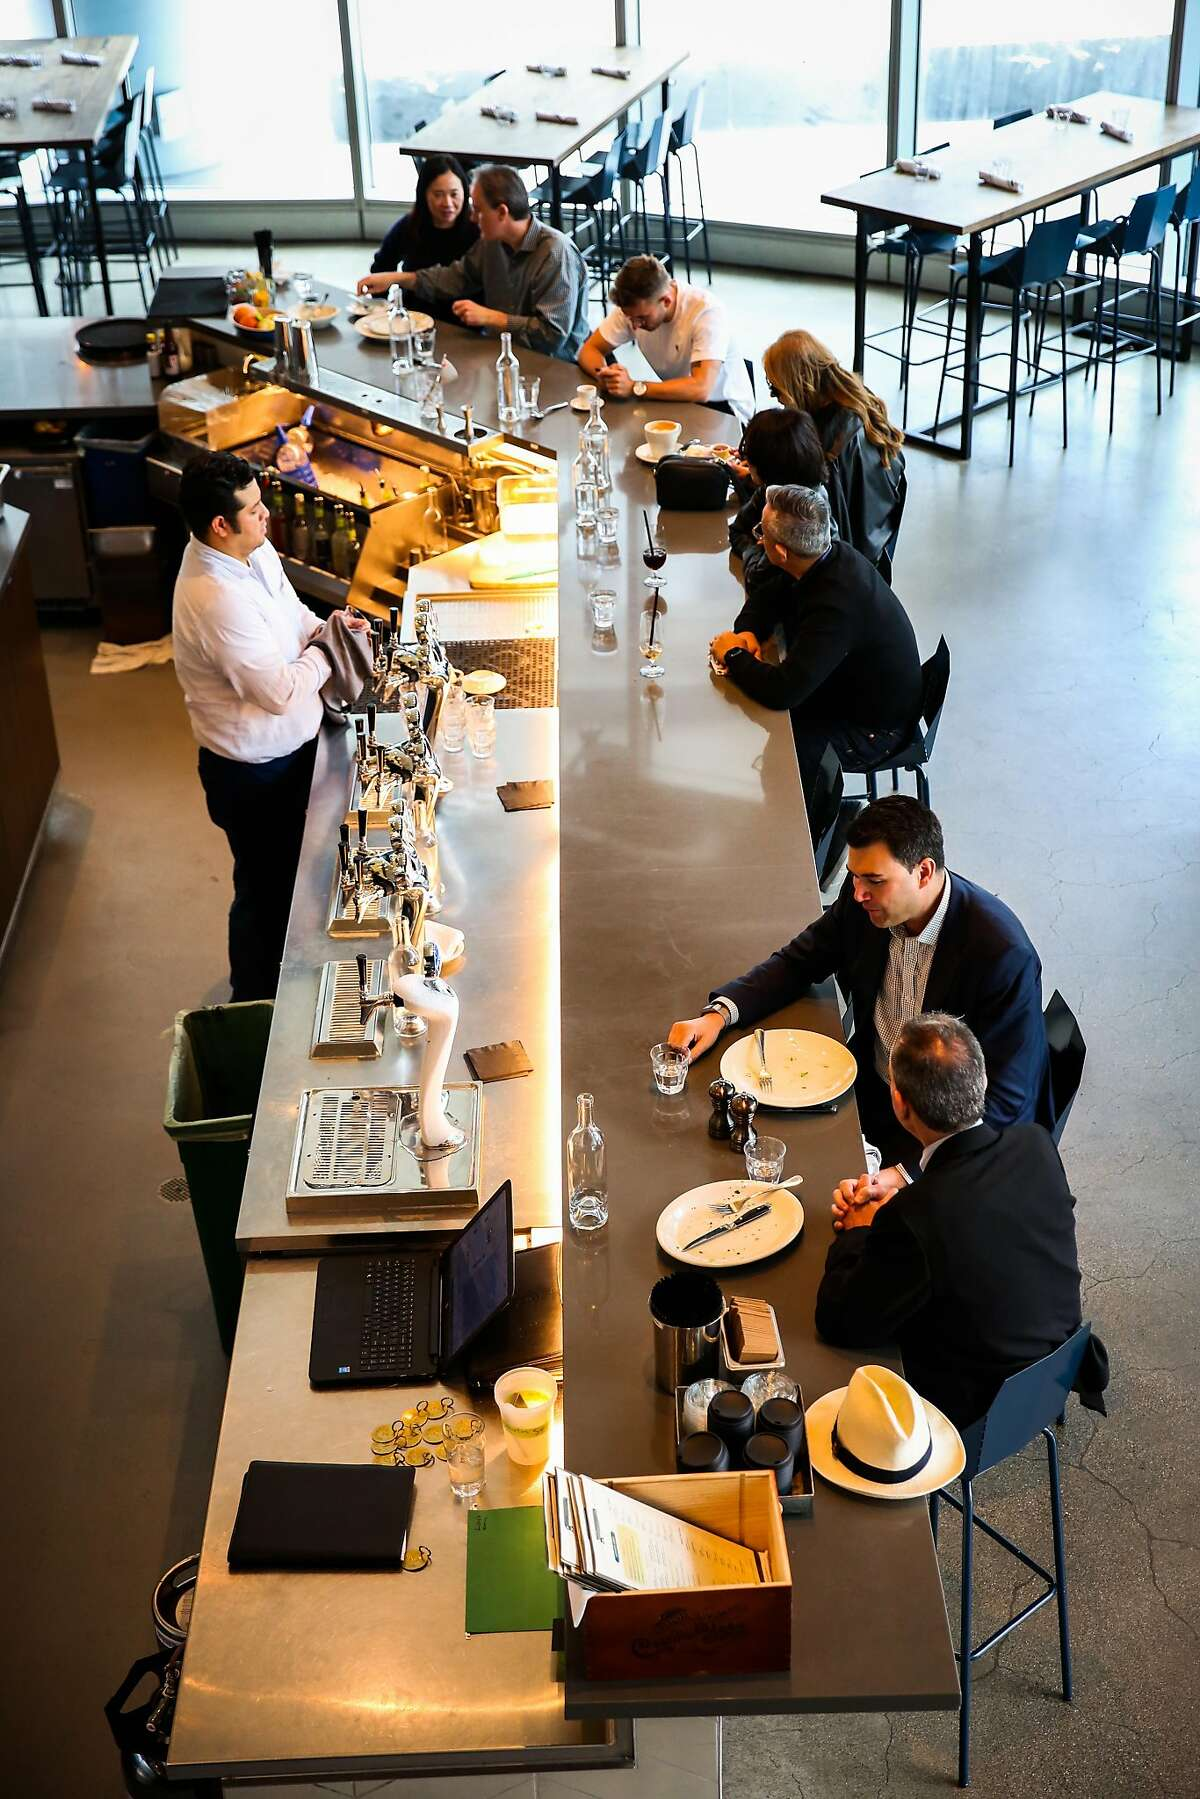 The dining room at Corridor restaurant in San Francisco, California, on Tuesday, July 24, 2018.